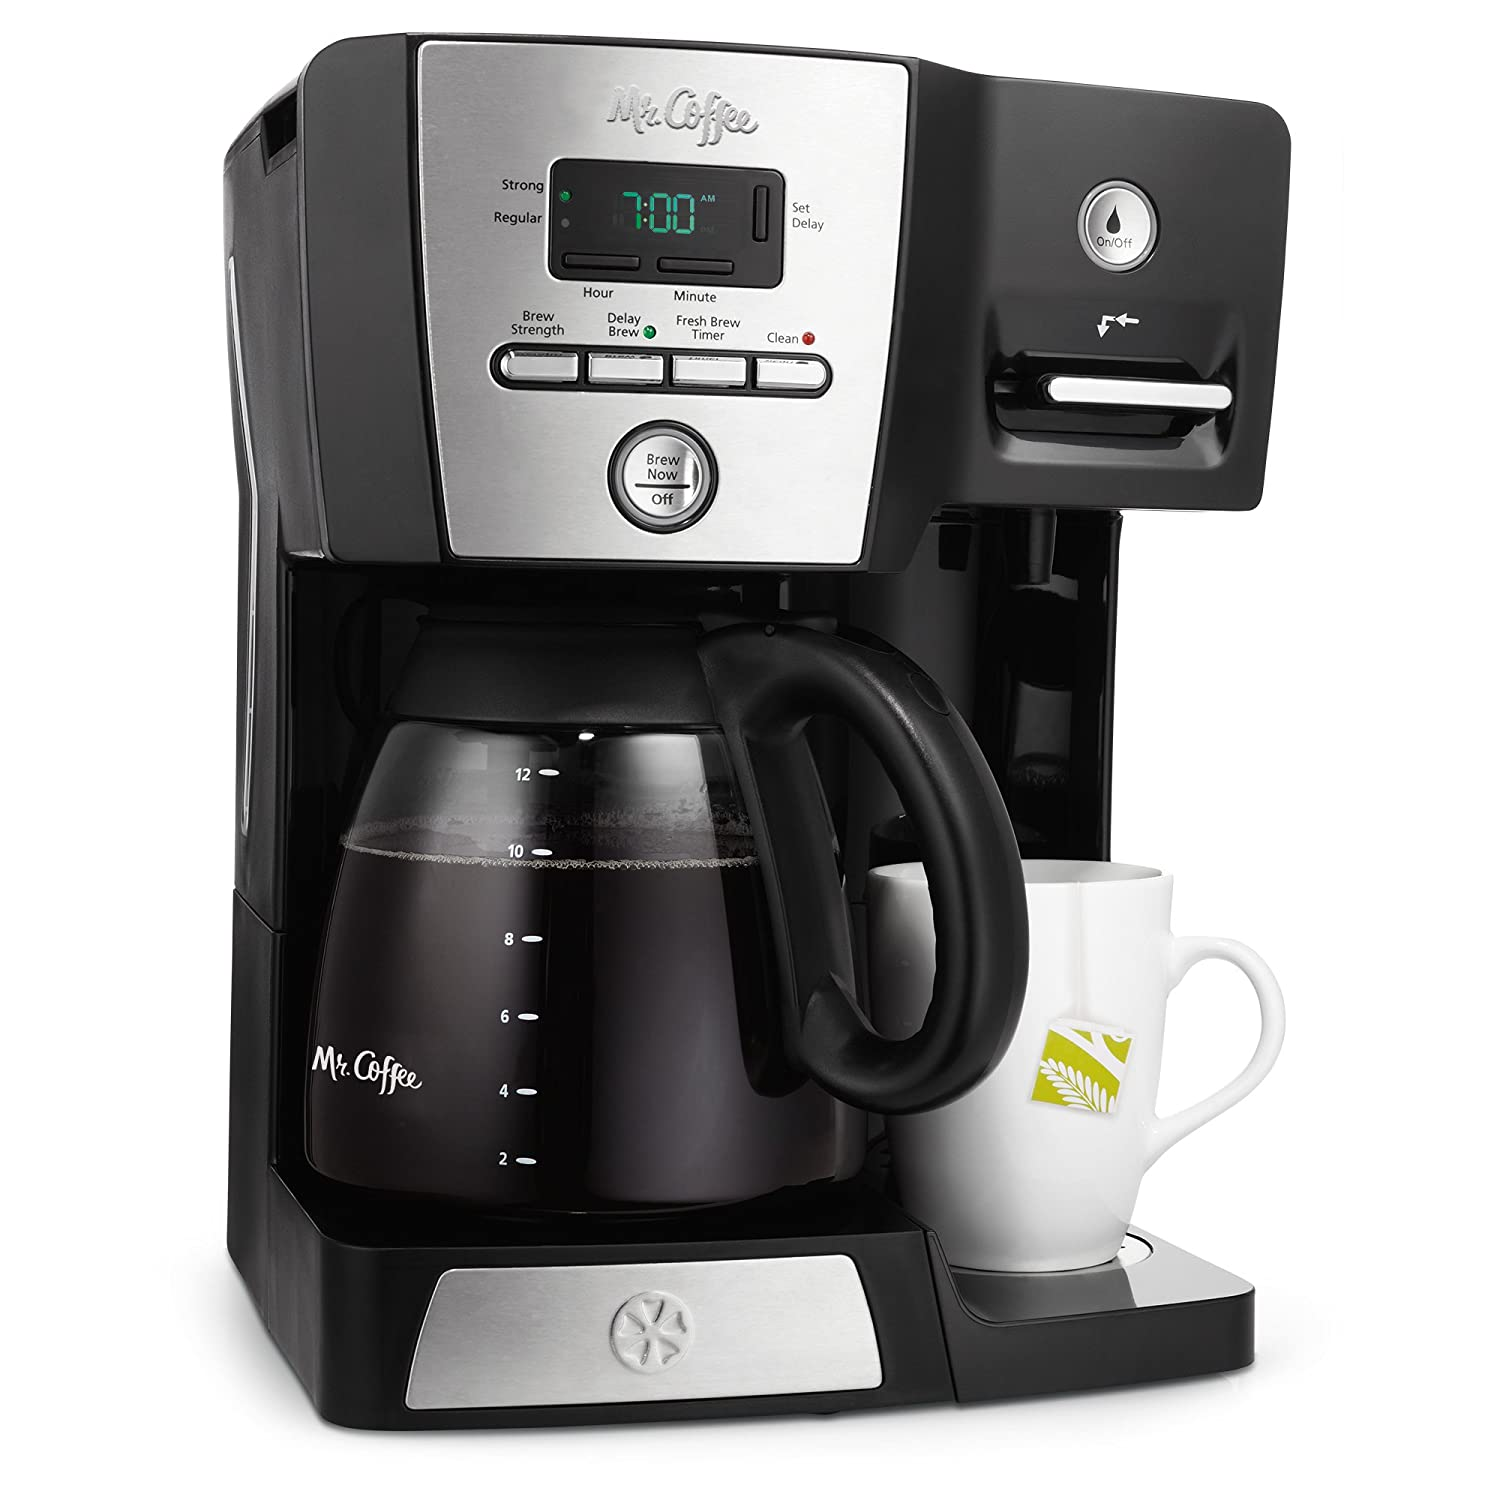 programmable coffee maker with hot water reservoir